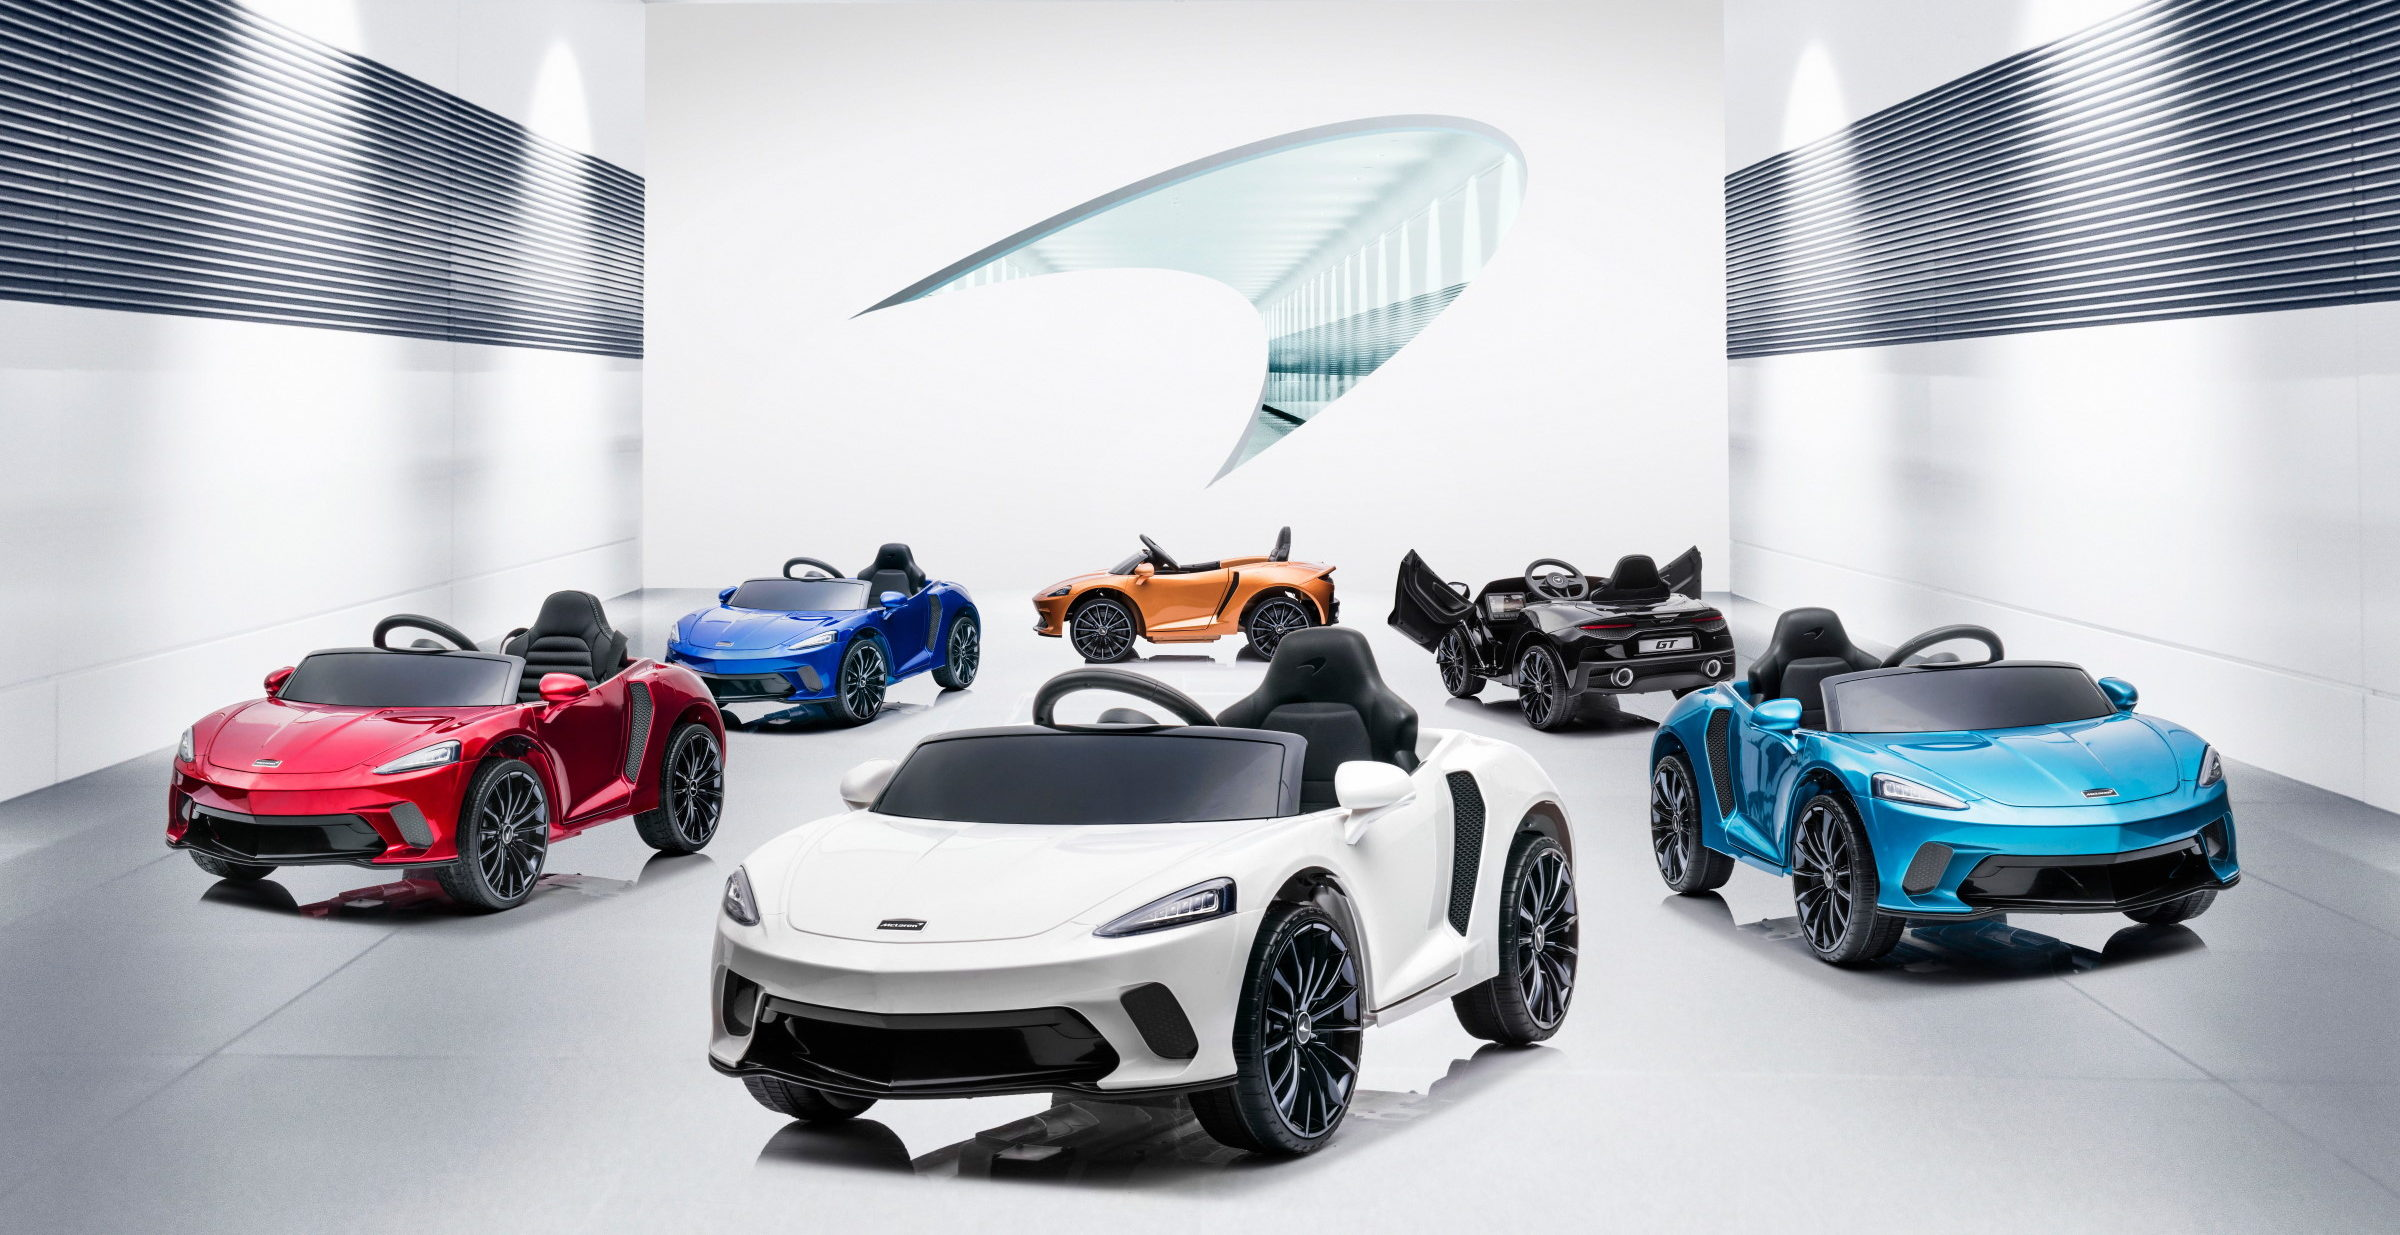 The Most Beautiful Luxury Ride-On Cars Made For Kids